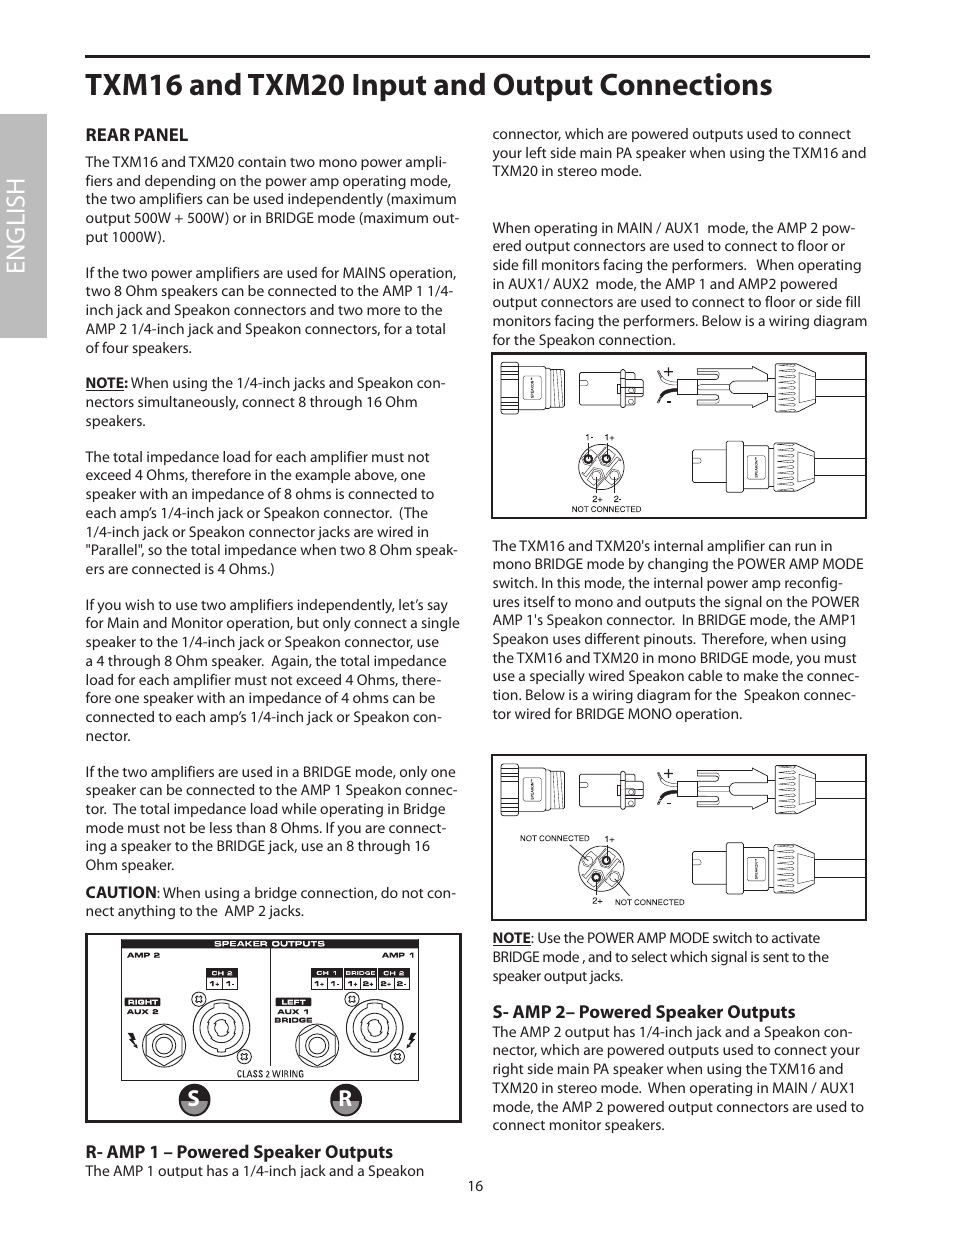 medium resolution of rear panel txm16 and txm20 input and output connections english samson txm16 user manual page 20 132